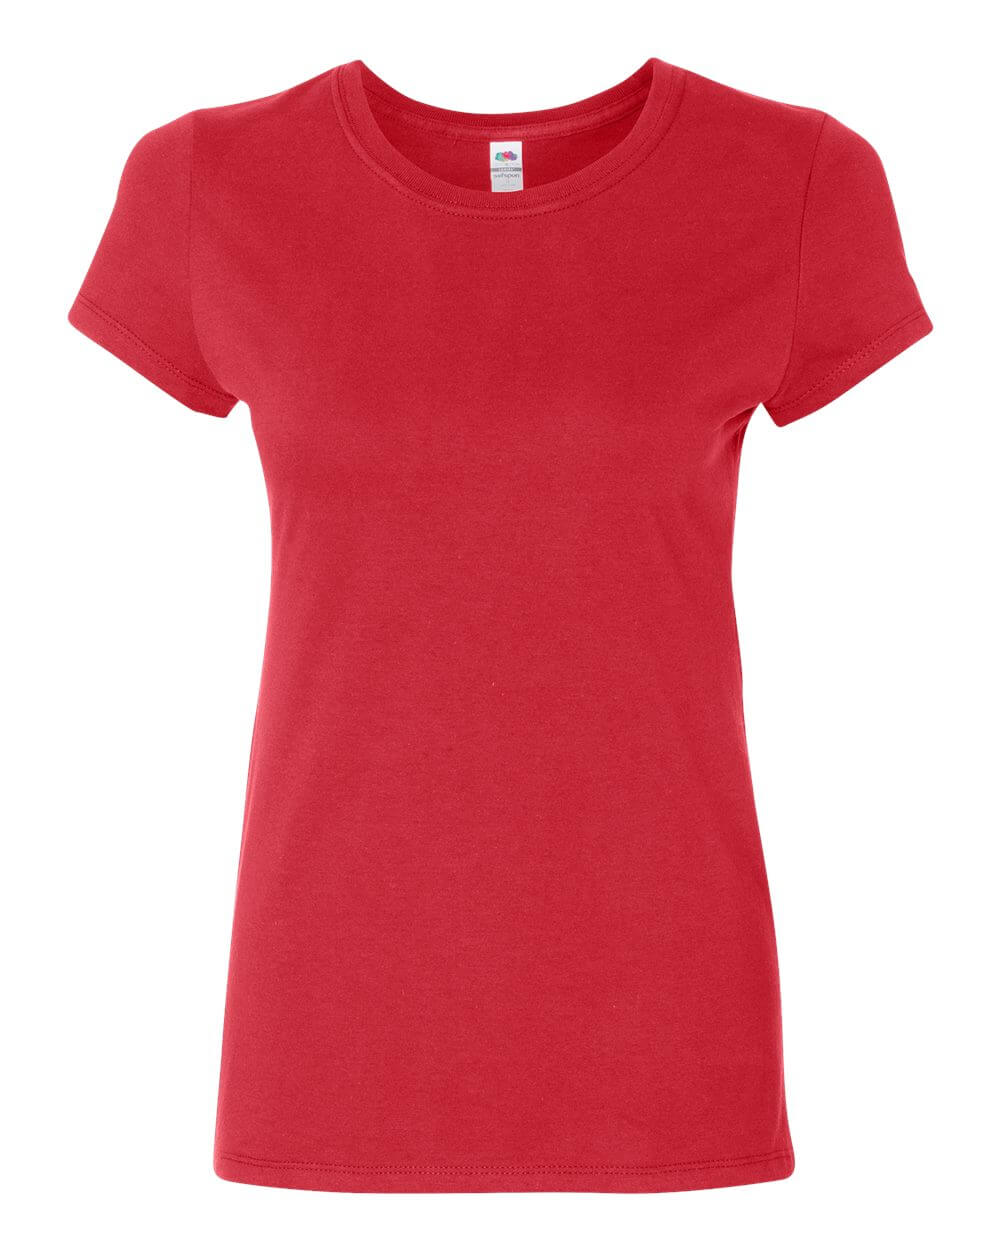 Fruit of the Loom Womens's Sofspun Red Custom T Shirts